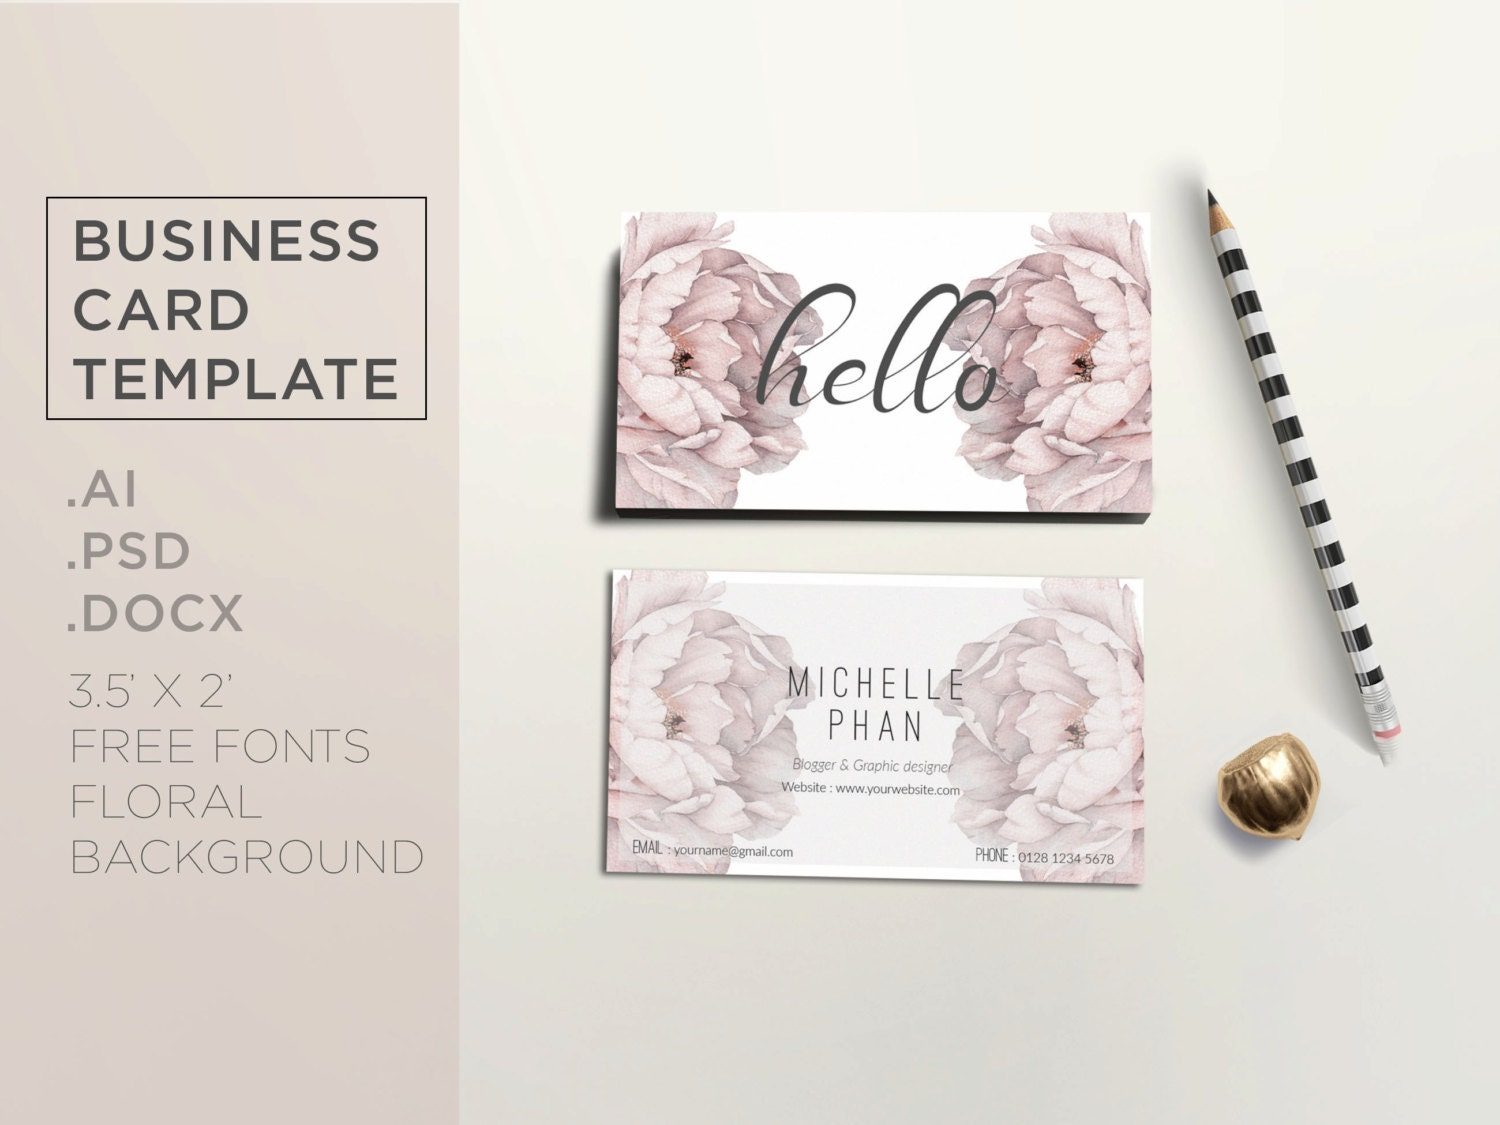 Floral business card template/card template/custom business